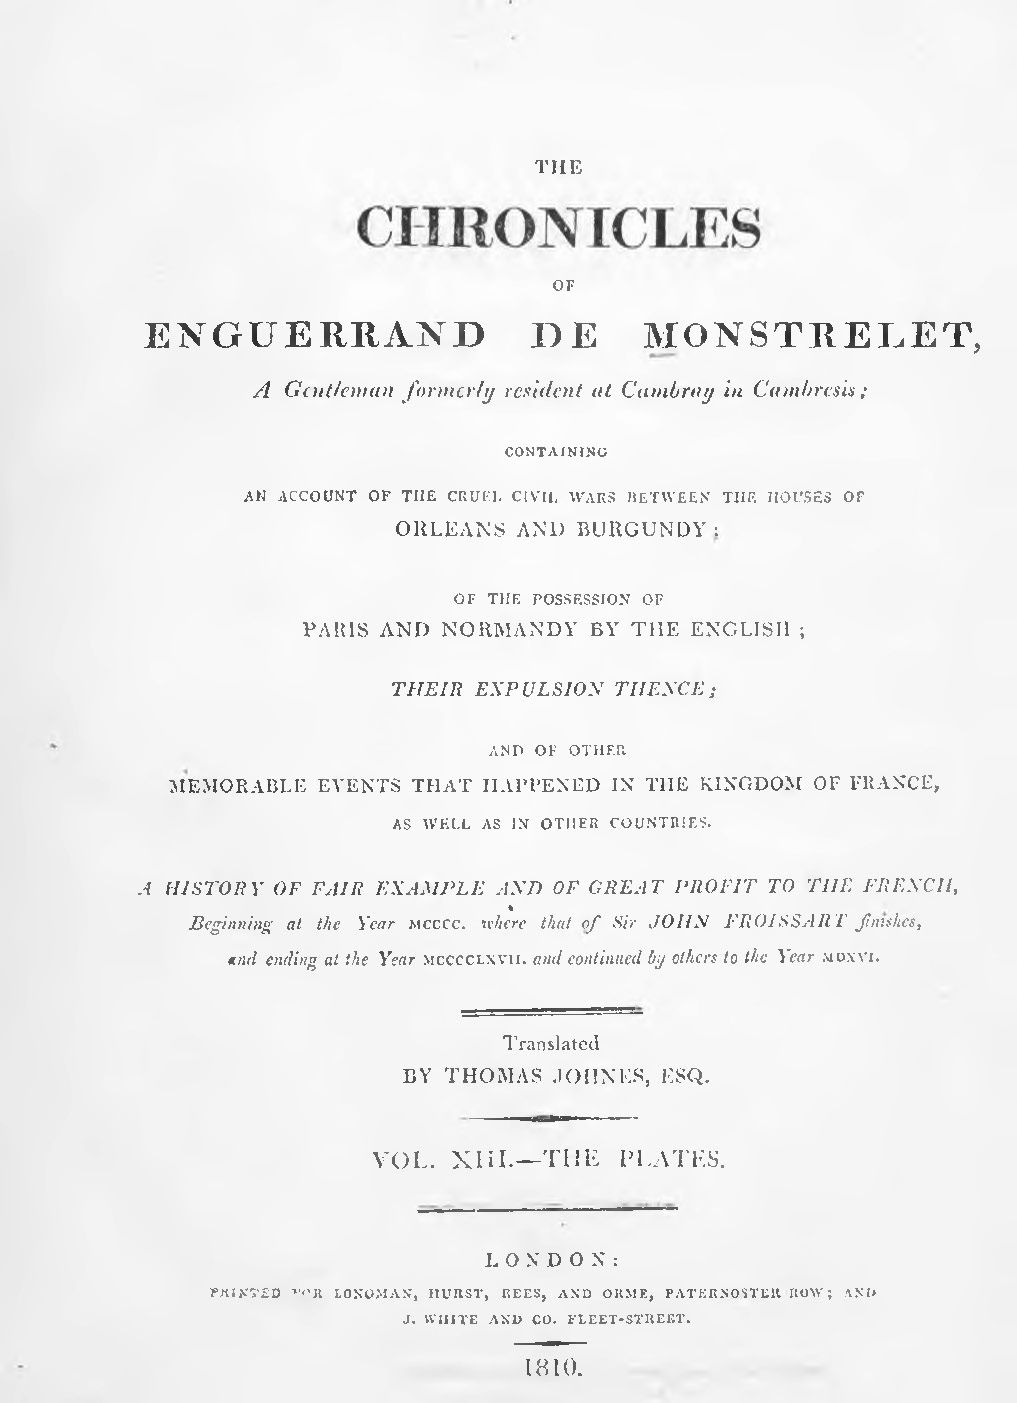 Enguerrand de Monstrelet chronicle vol.13